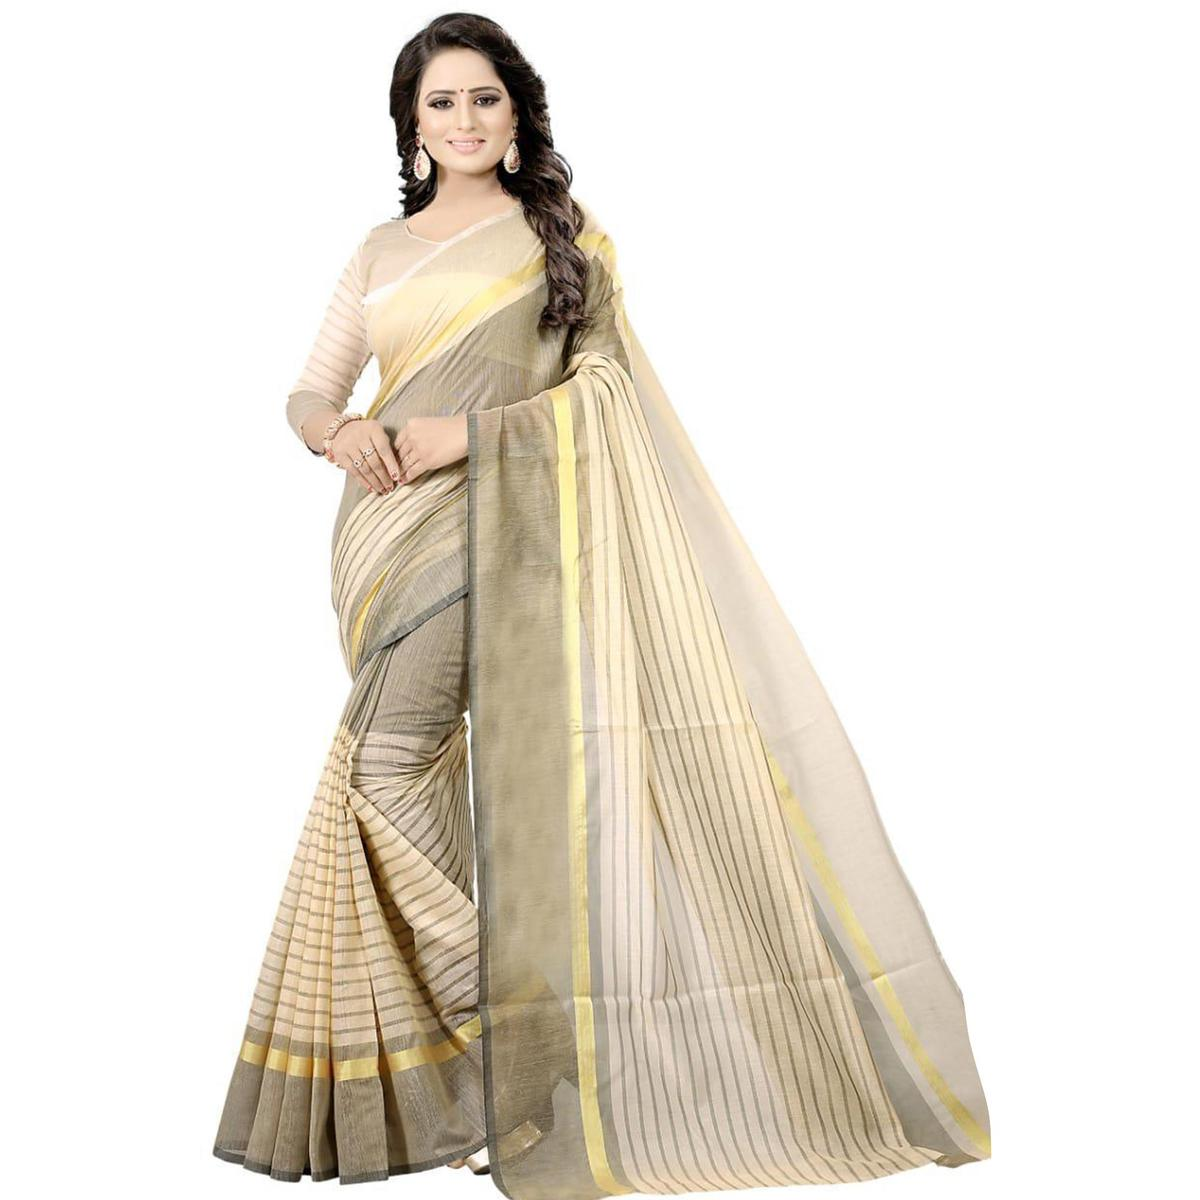 Majesty Cream Colored Festive Wear Chanderi Silk Saree